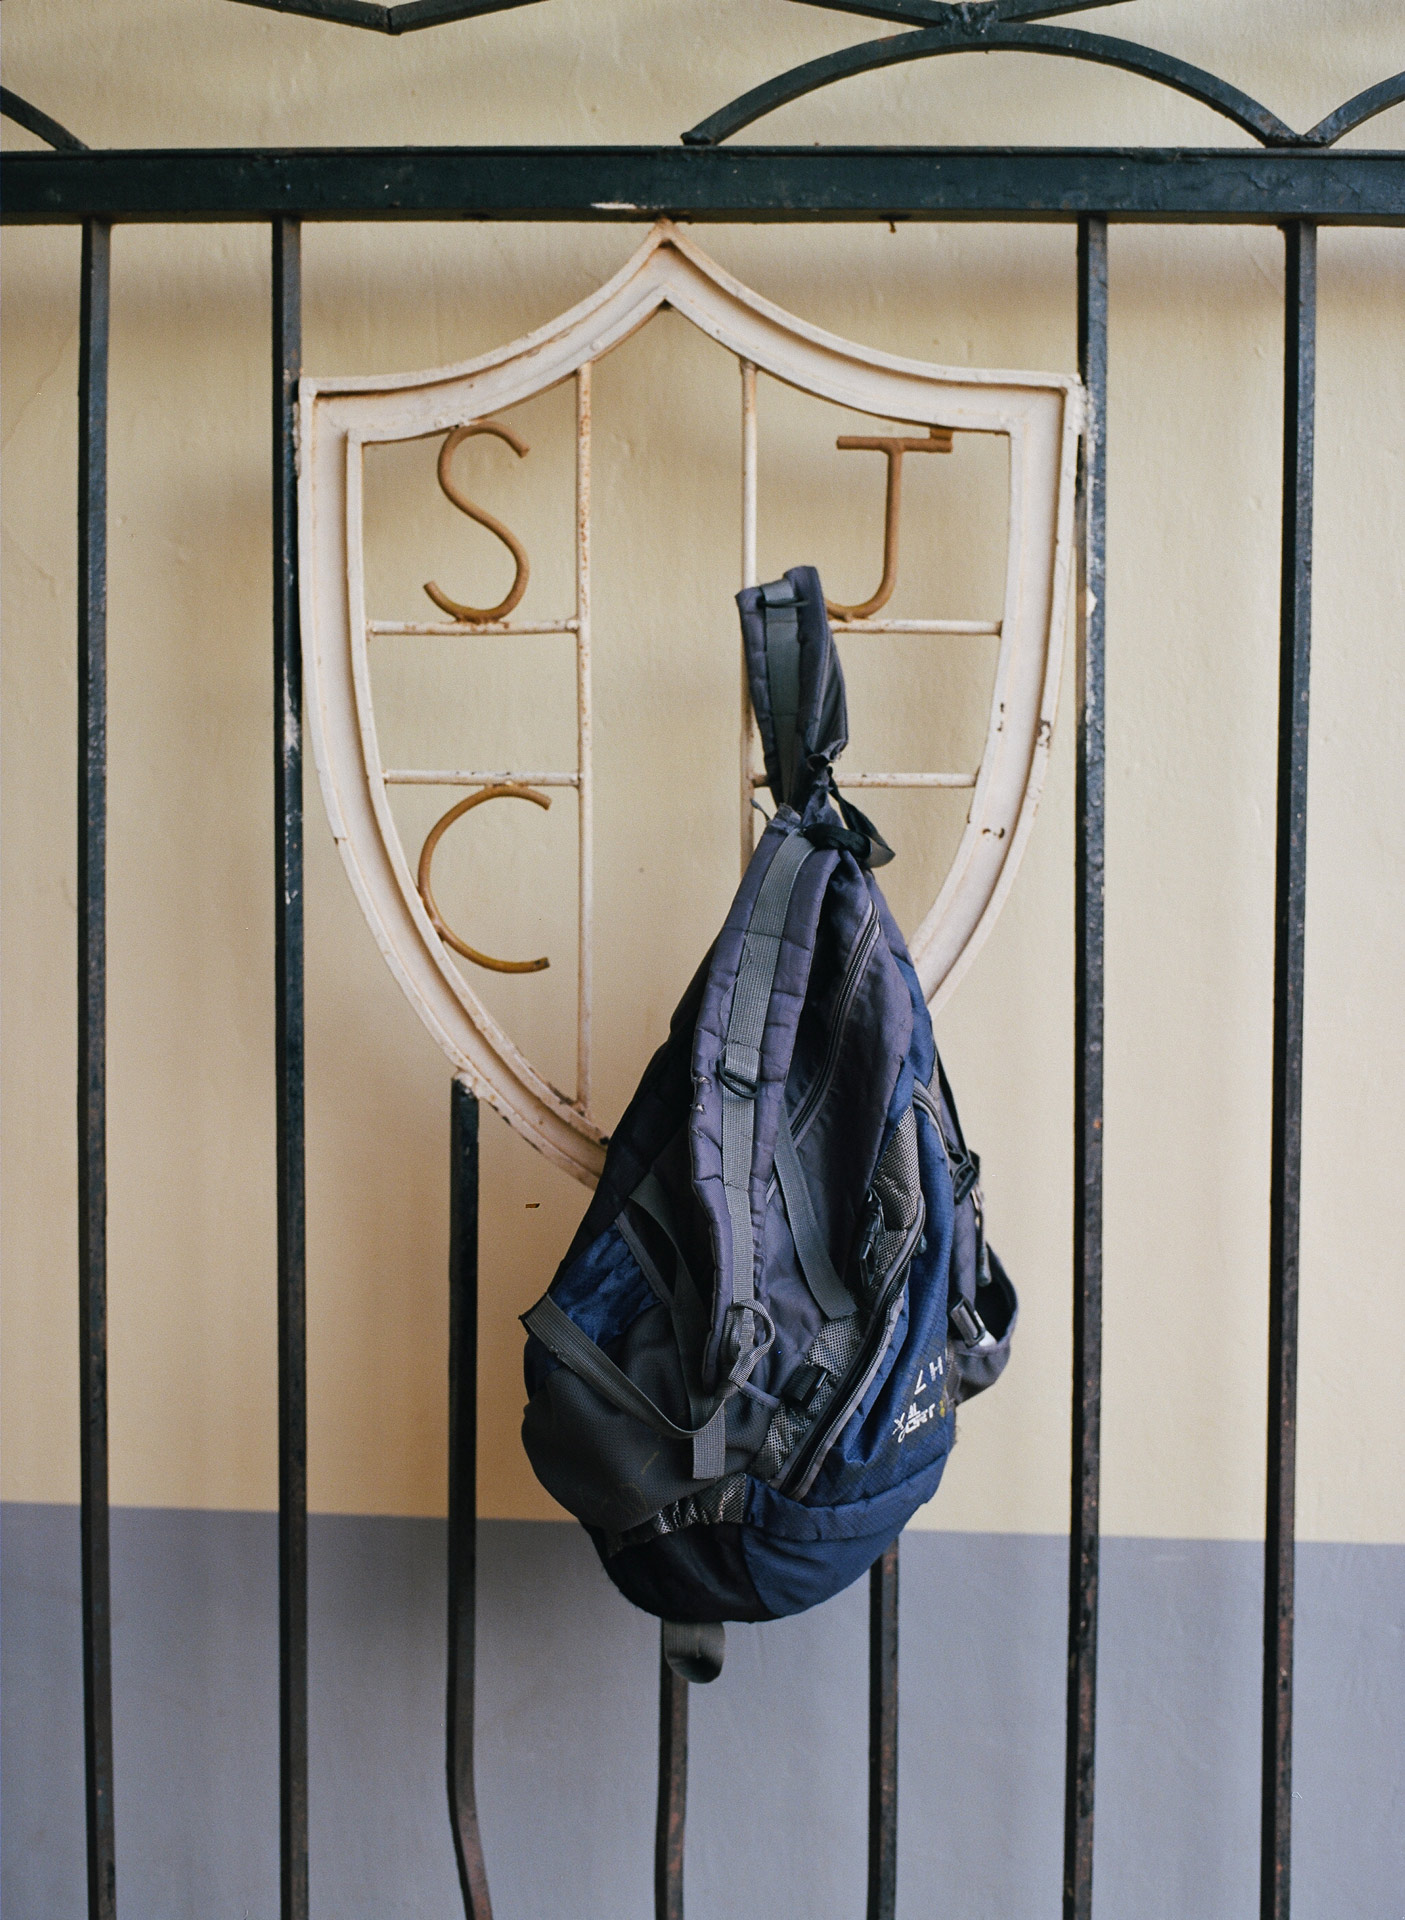 beaten up dark blue backpack hanging on metal fence with monogram by Alexi Hobbs in Uganda for Football for Good with Sportsnet